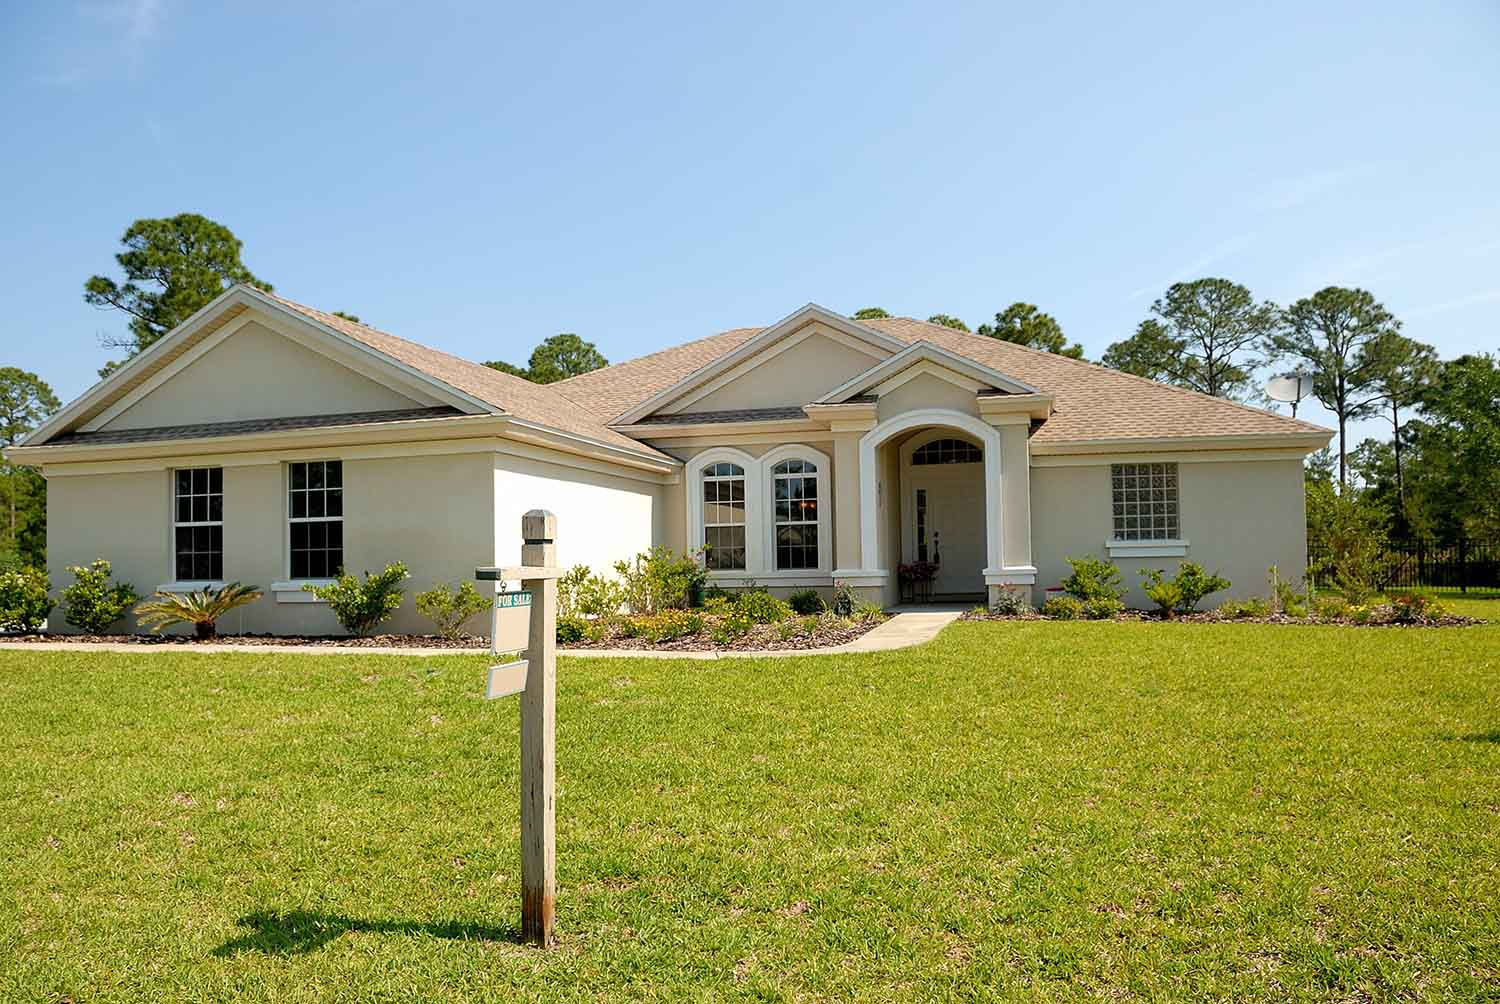 Home for sale by realtor